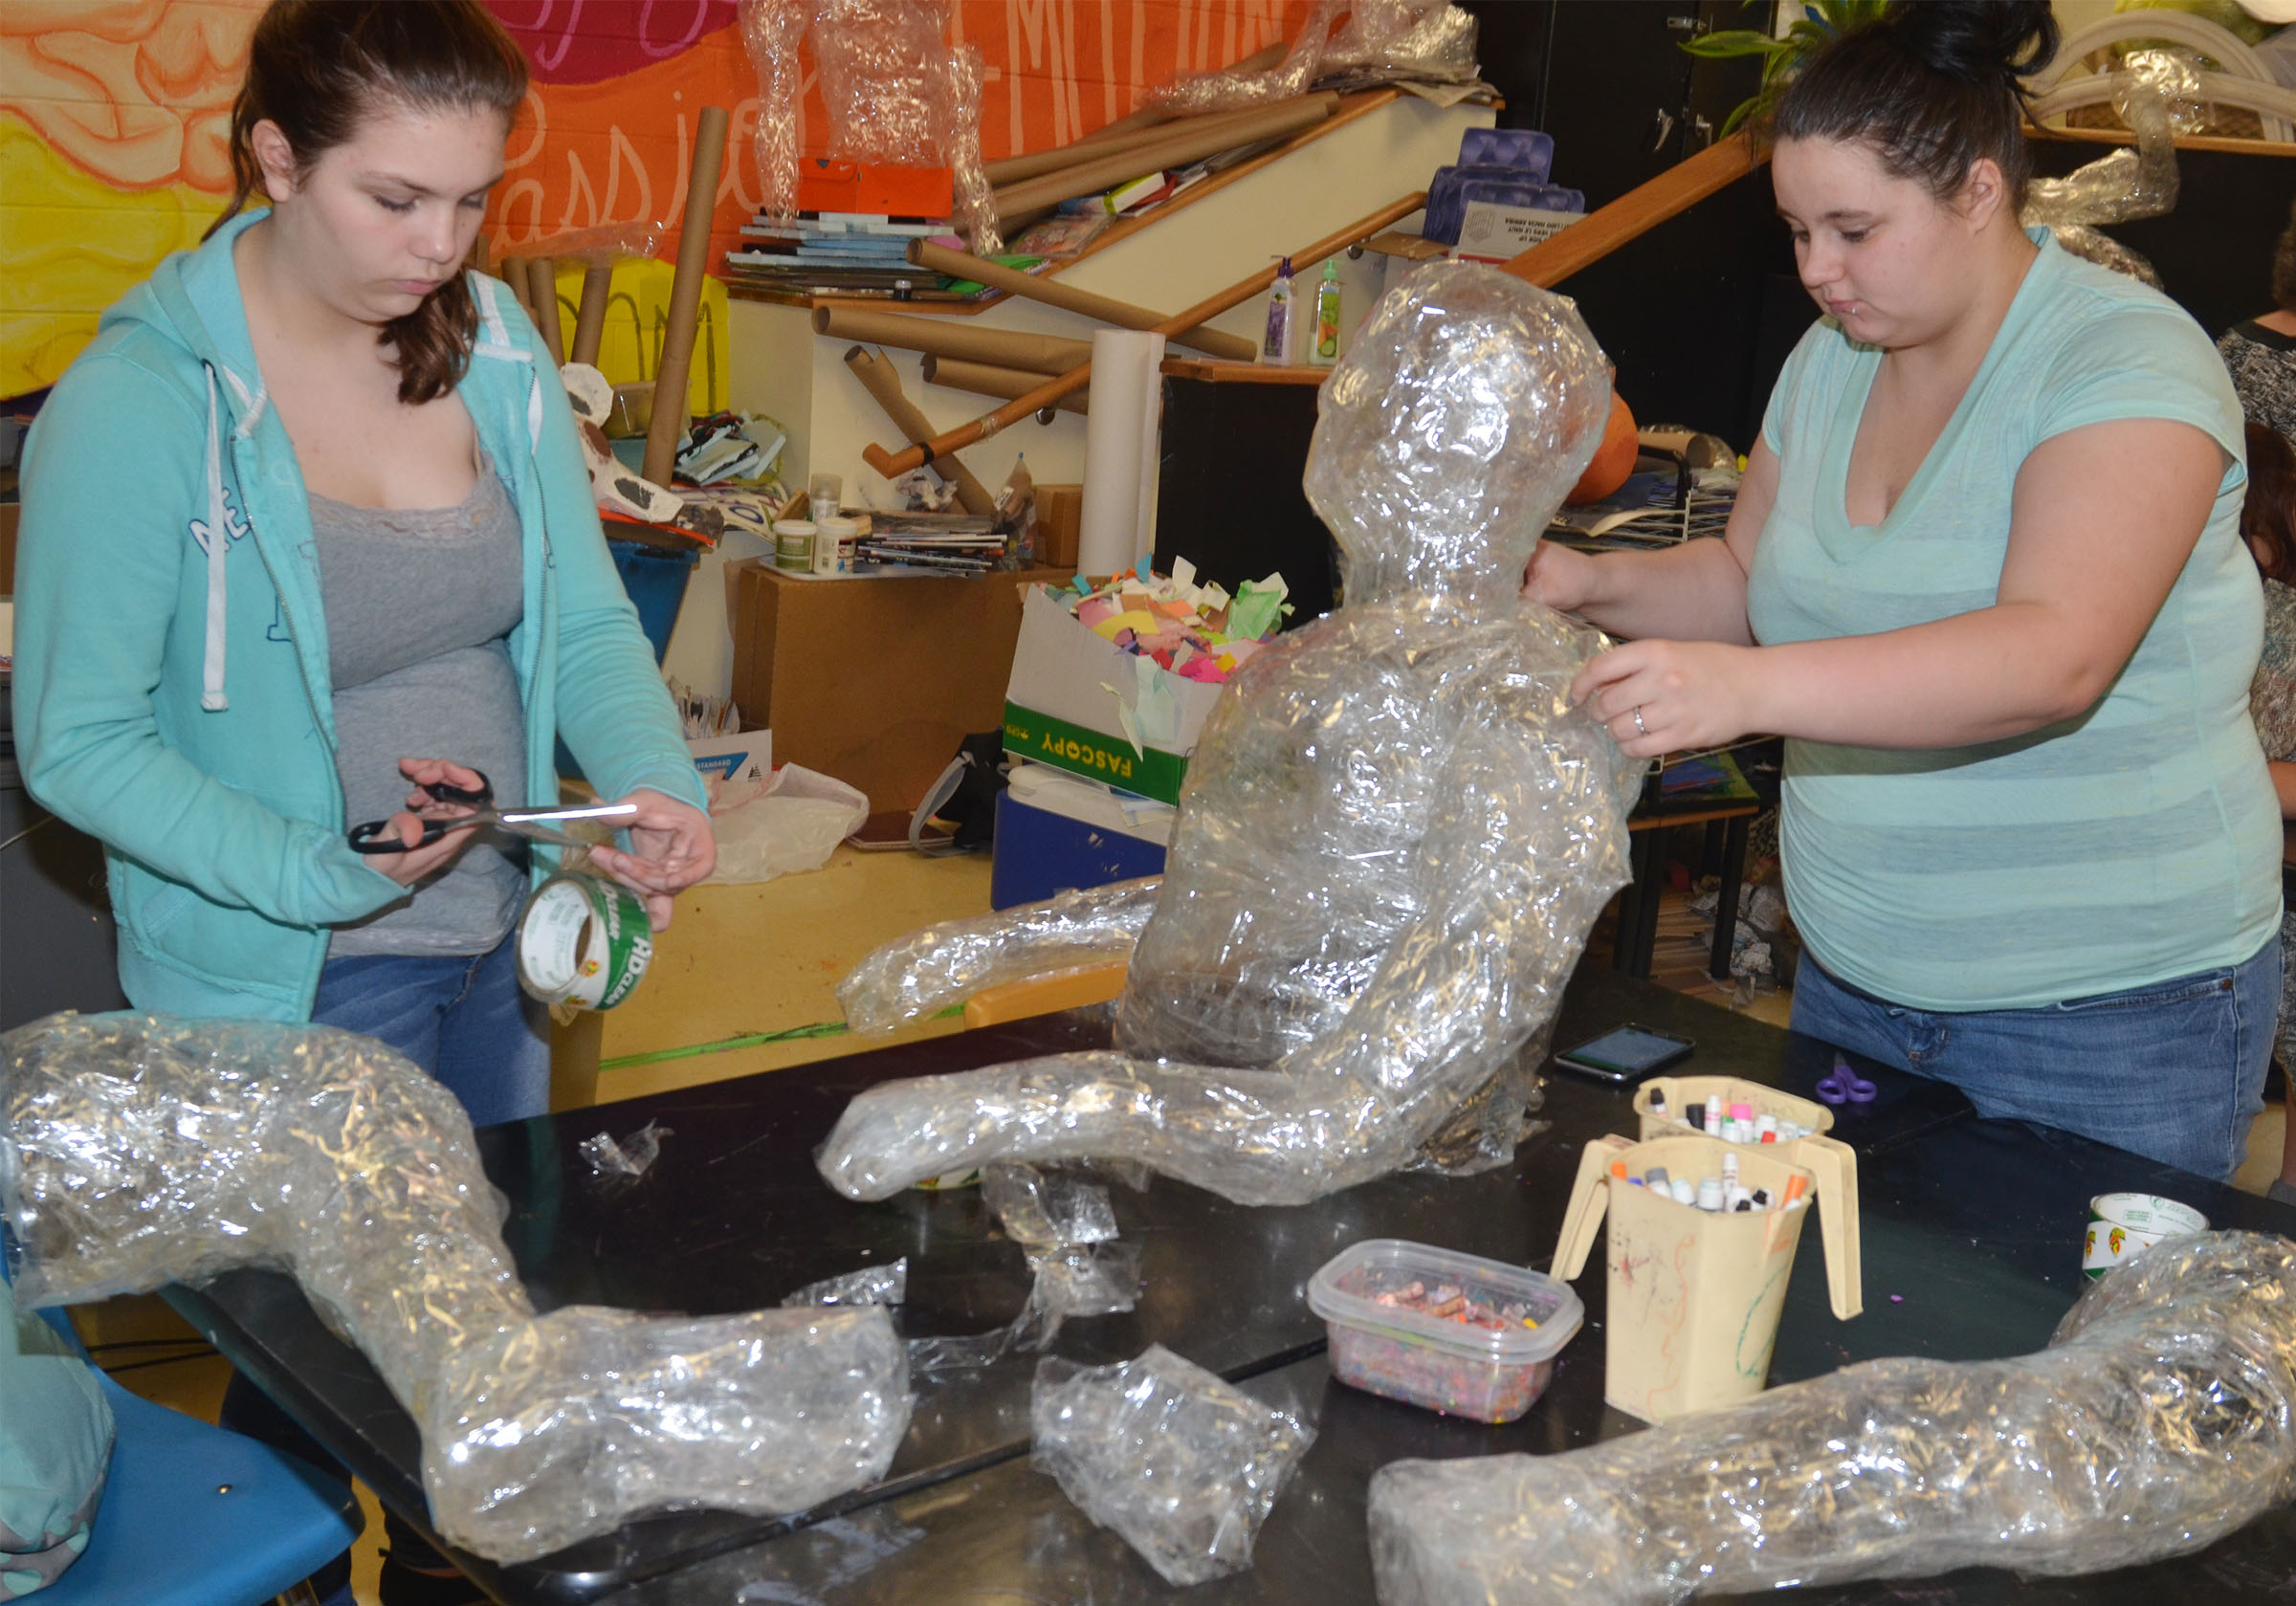 CHS freshman Shelby Hunt, at left, and sophomore Amanda Dotson put their tape person together.